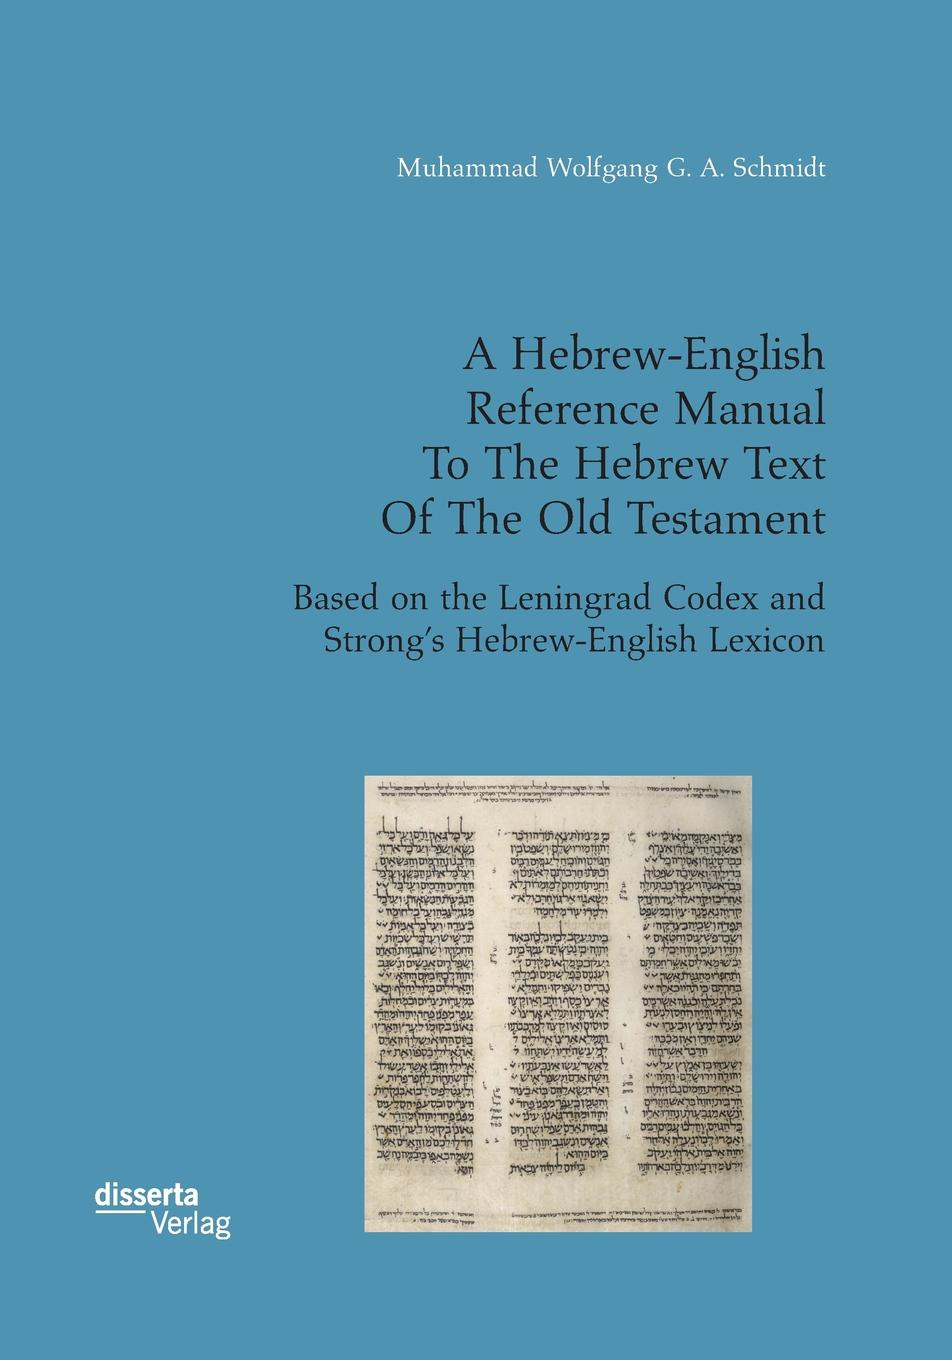 Muhammad Wolfgang G. A. Schmidt A Hebrew-English Reference Manual To The Hebrew Text Of The Old Testament. Based on the Leningrad Codex and Strong.s Hebrew-English Lexicon